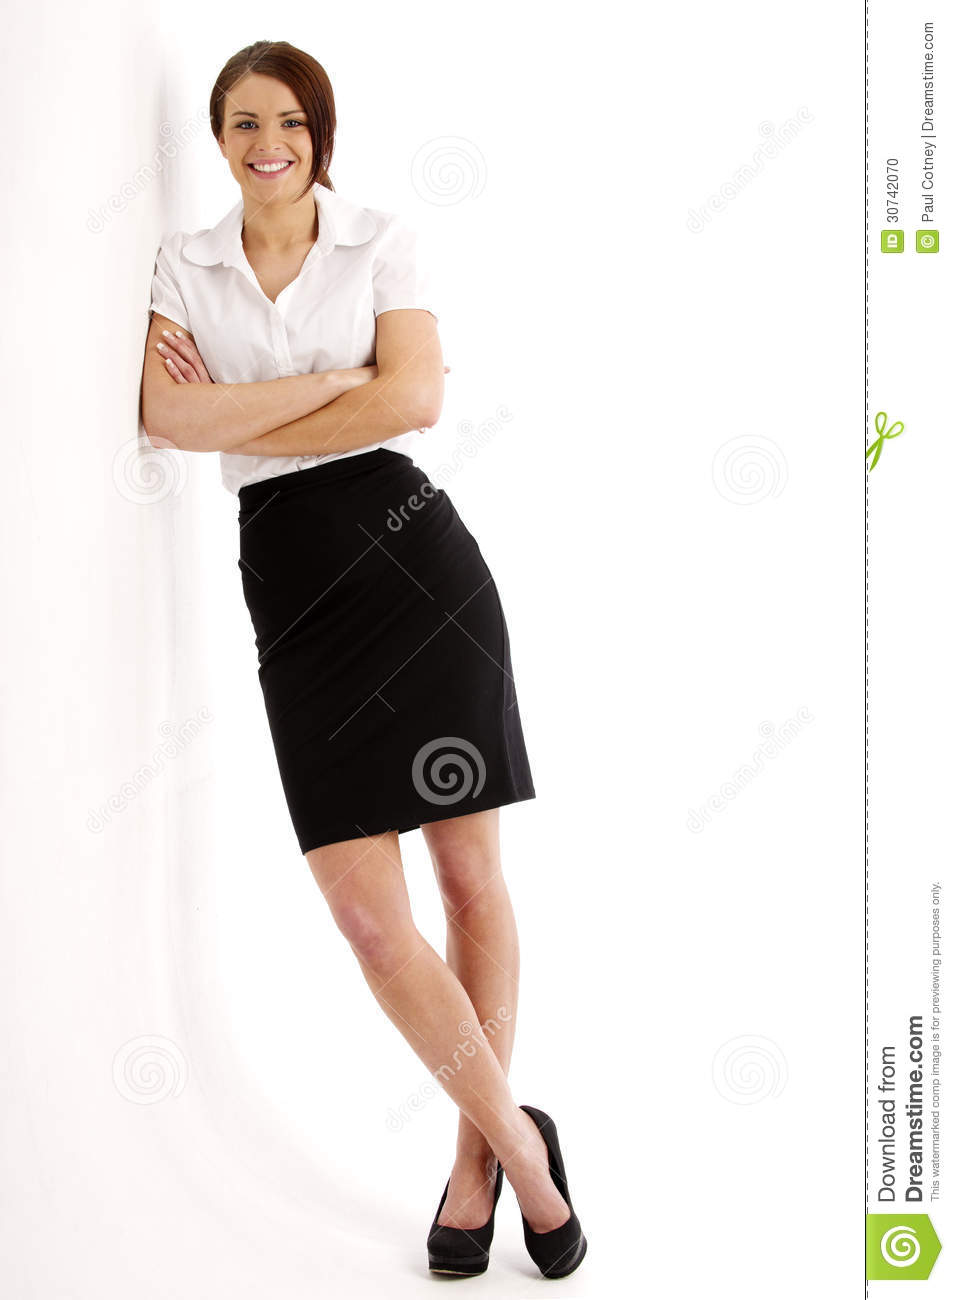 Business Woman Leaning Against A Wall Stock Photo - Image: 30742070